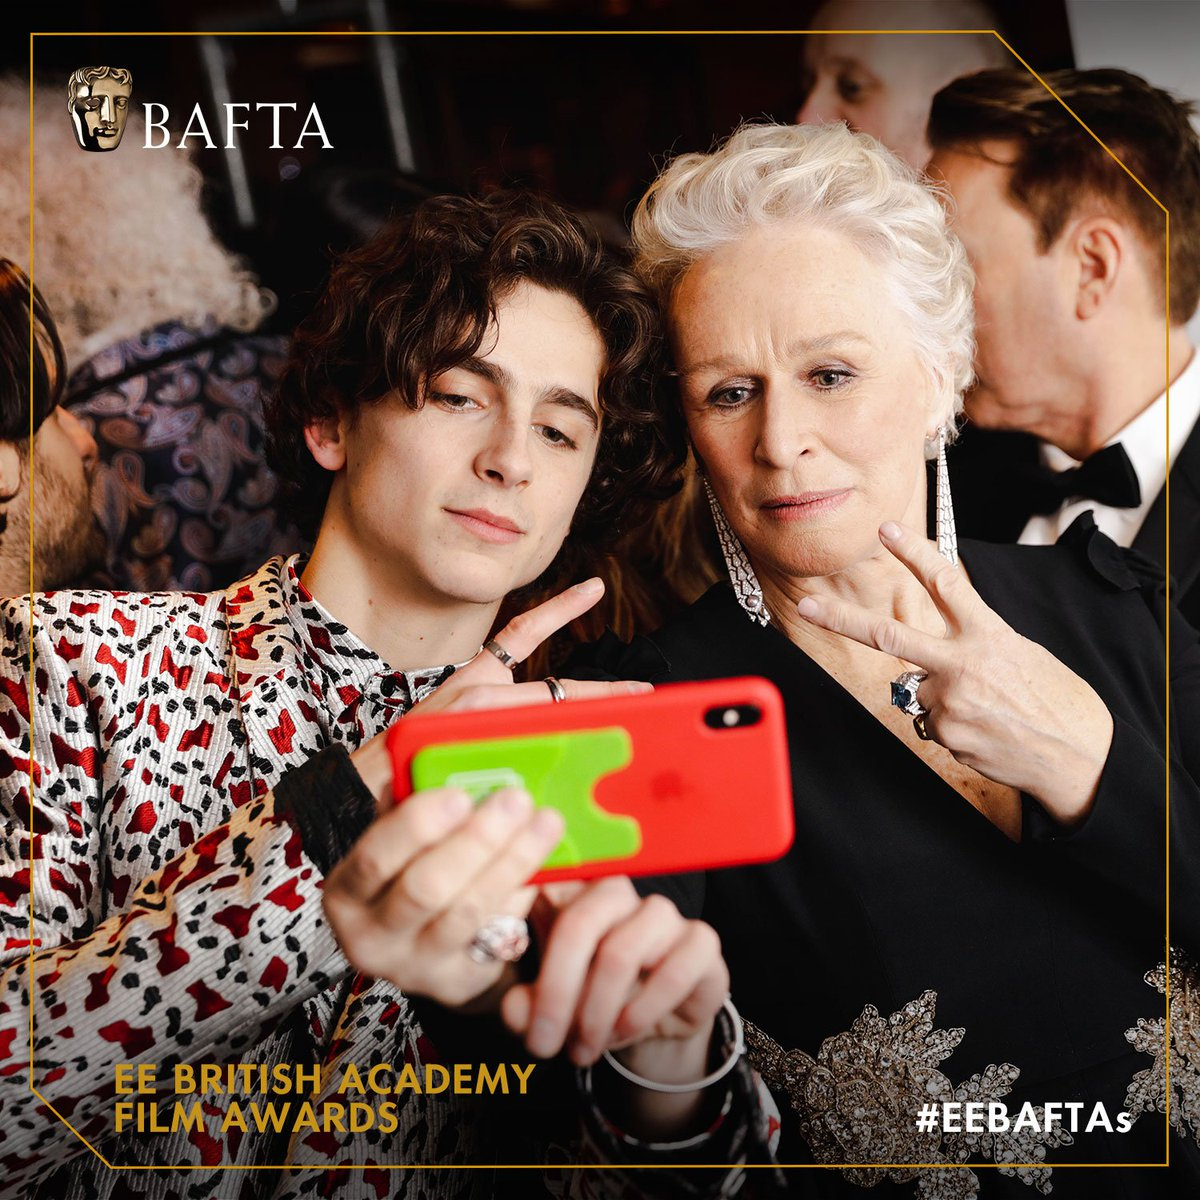 Start your morning off right with a #ThrowbackThursday to the 2019 #EEBAFTAs   Glenn Close knows how to take a great selfie! <br>http://pic.twitter.com/qSuAgDkCmf